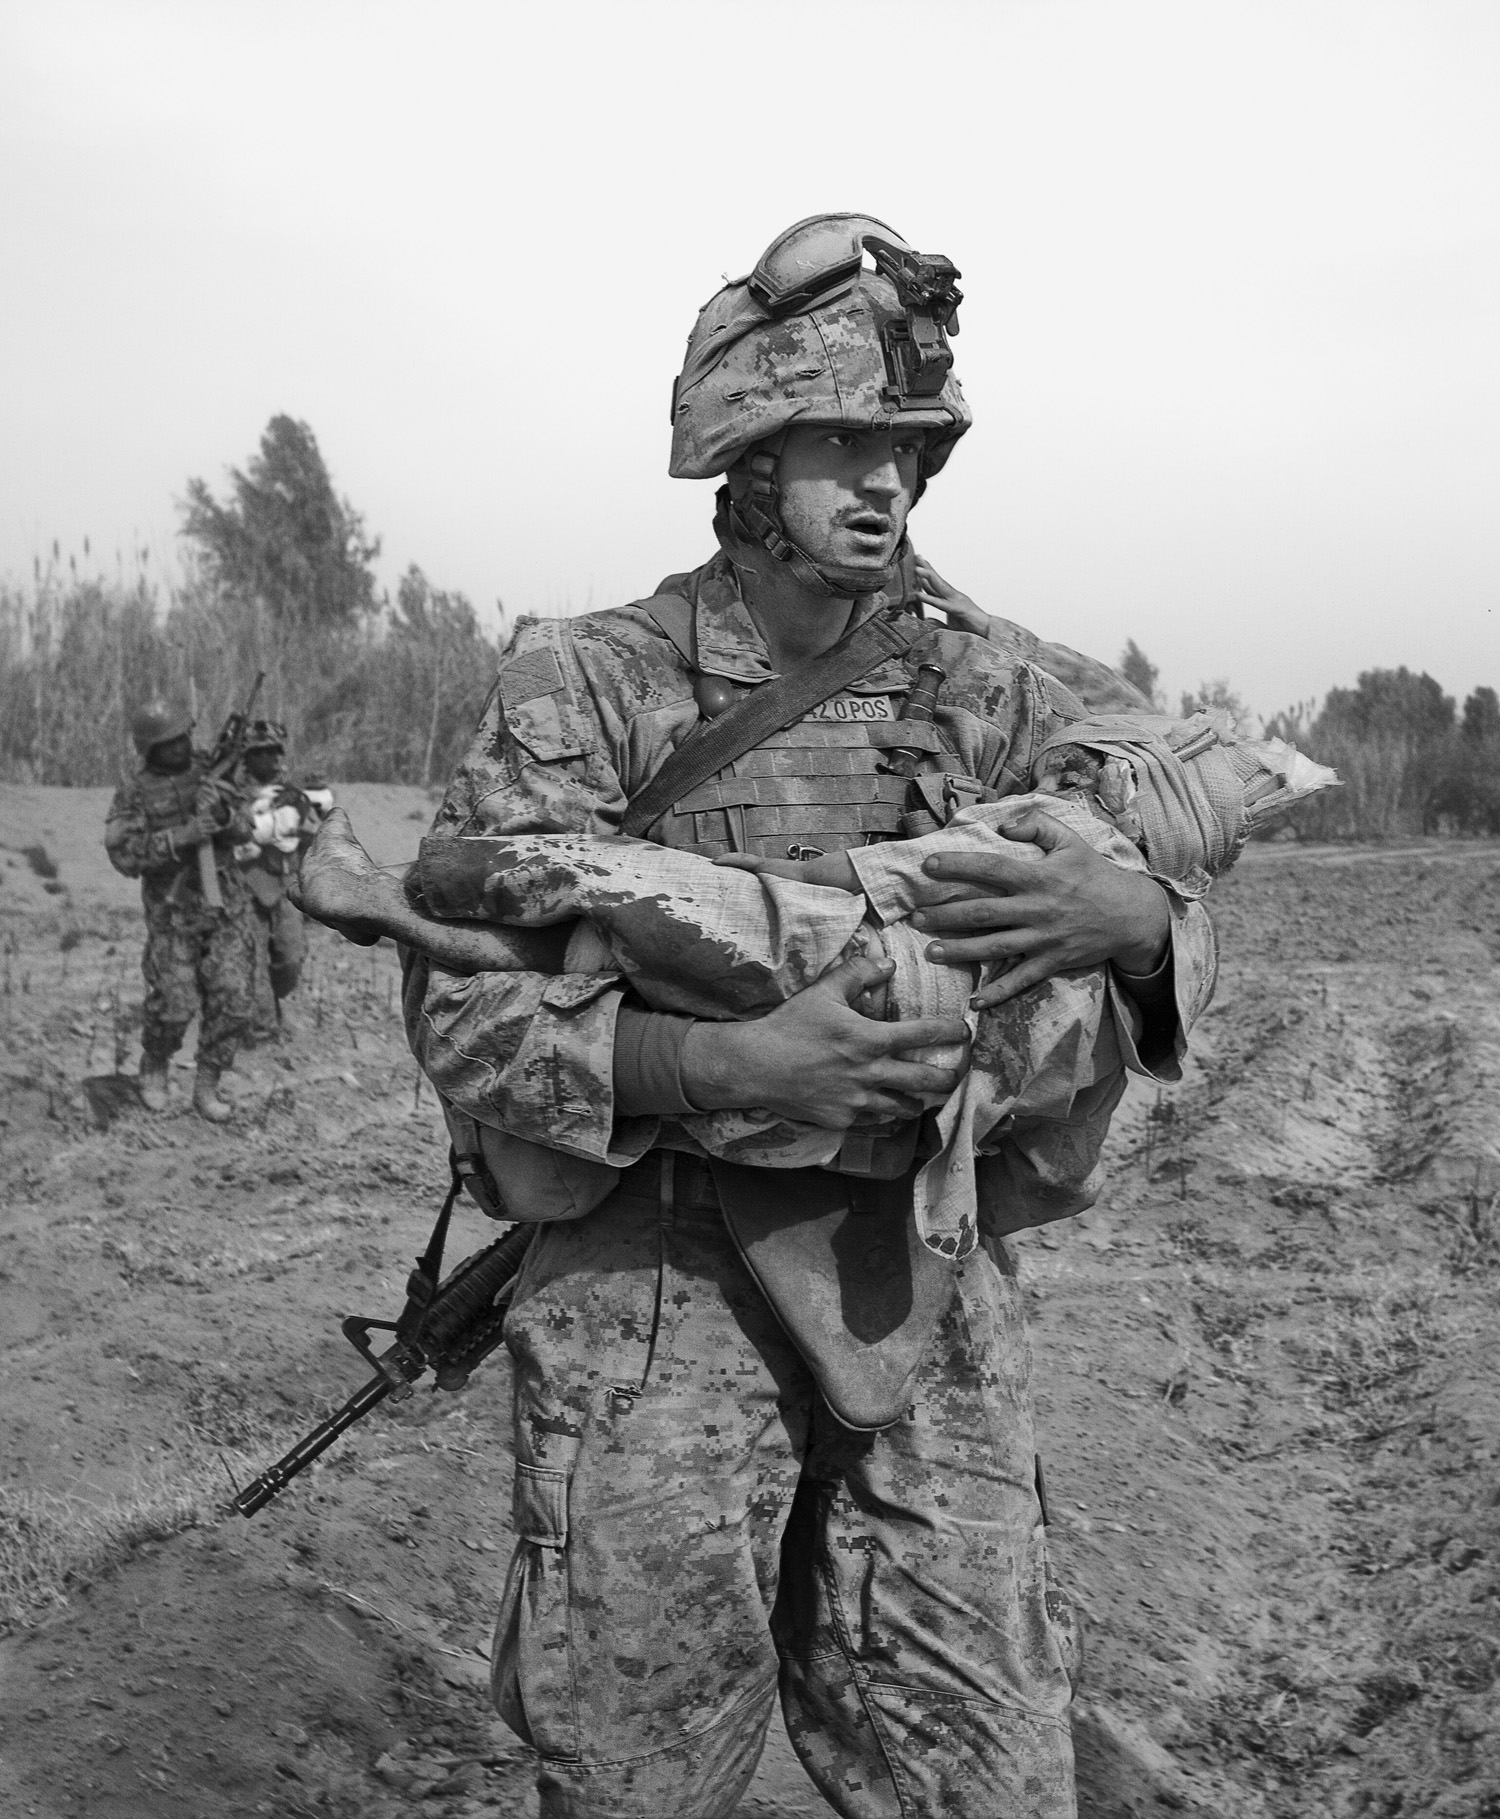 A Marine carries an Afghan child, one of two wounded by coalition aircraft during an air support mission.